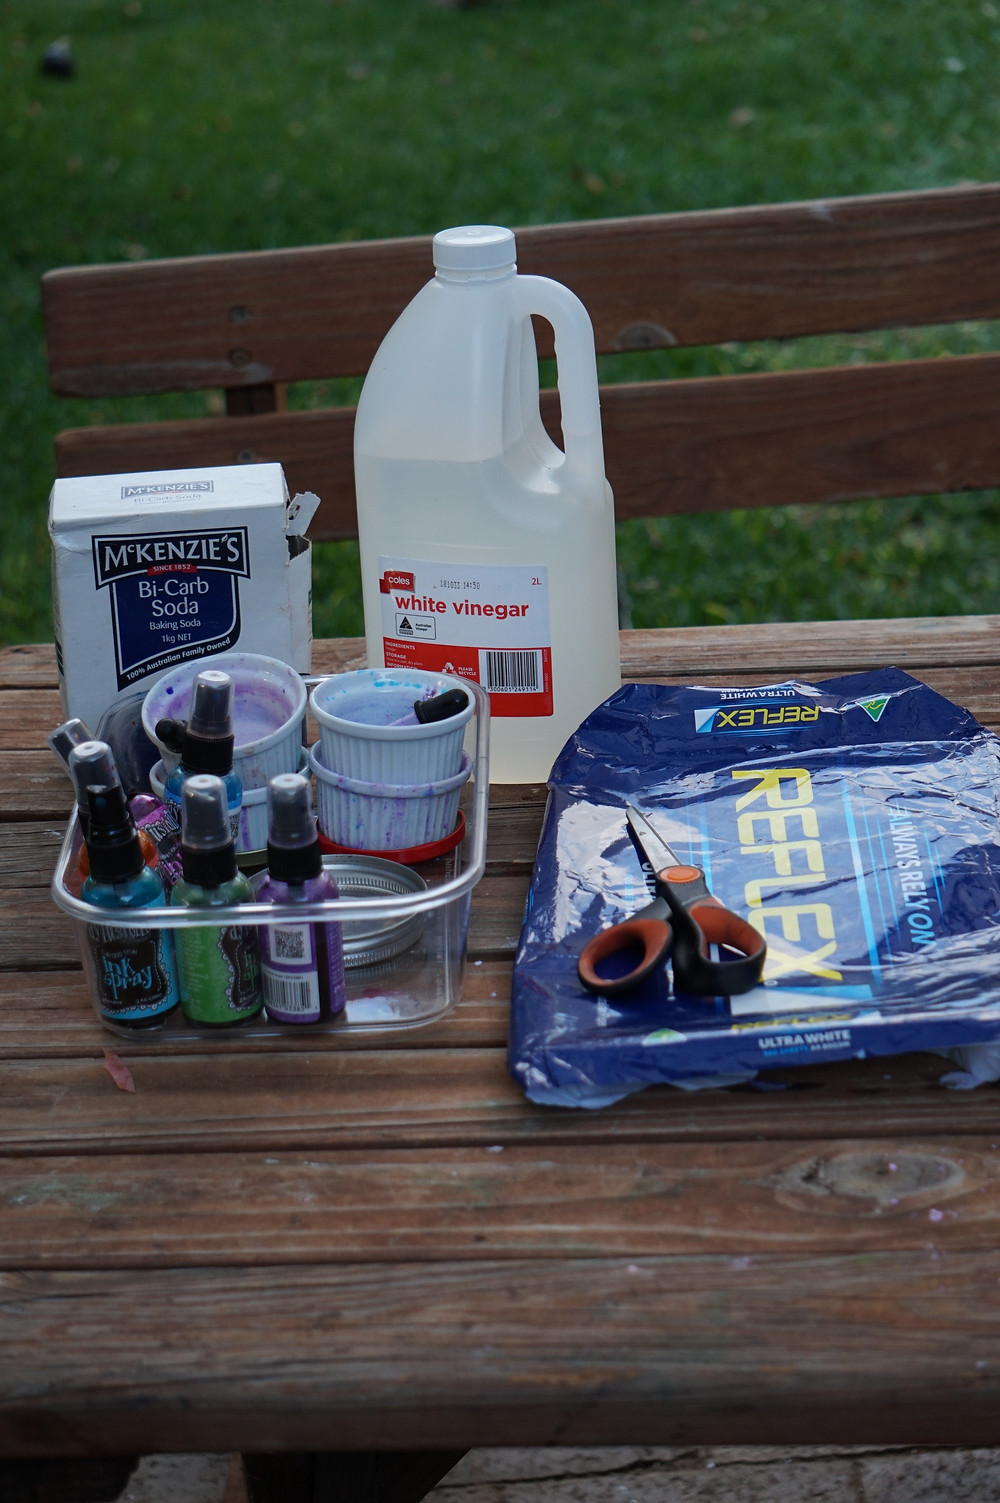 Art supplies on an outdoor wooden table